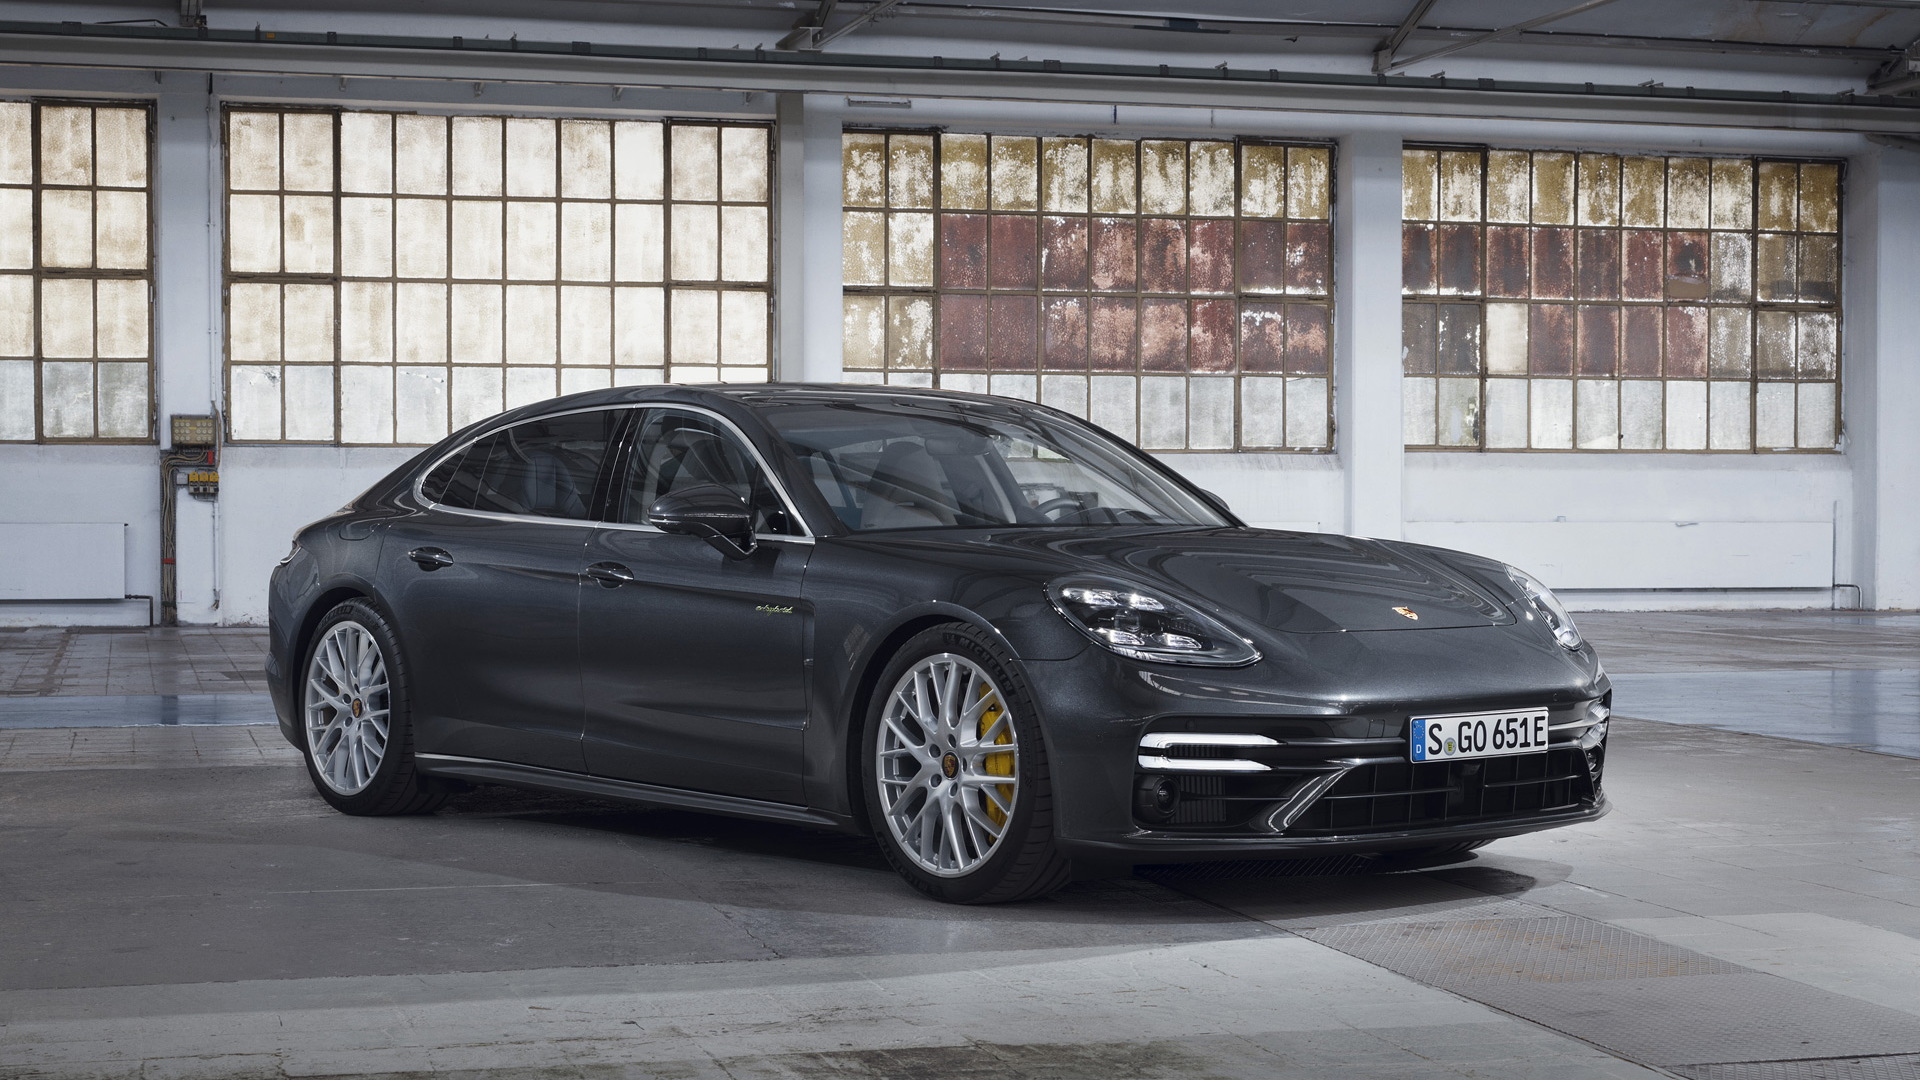 2021保时捷Panamera Turbo S E-Hybrid Executive